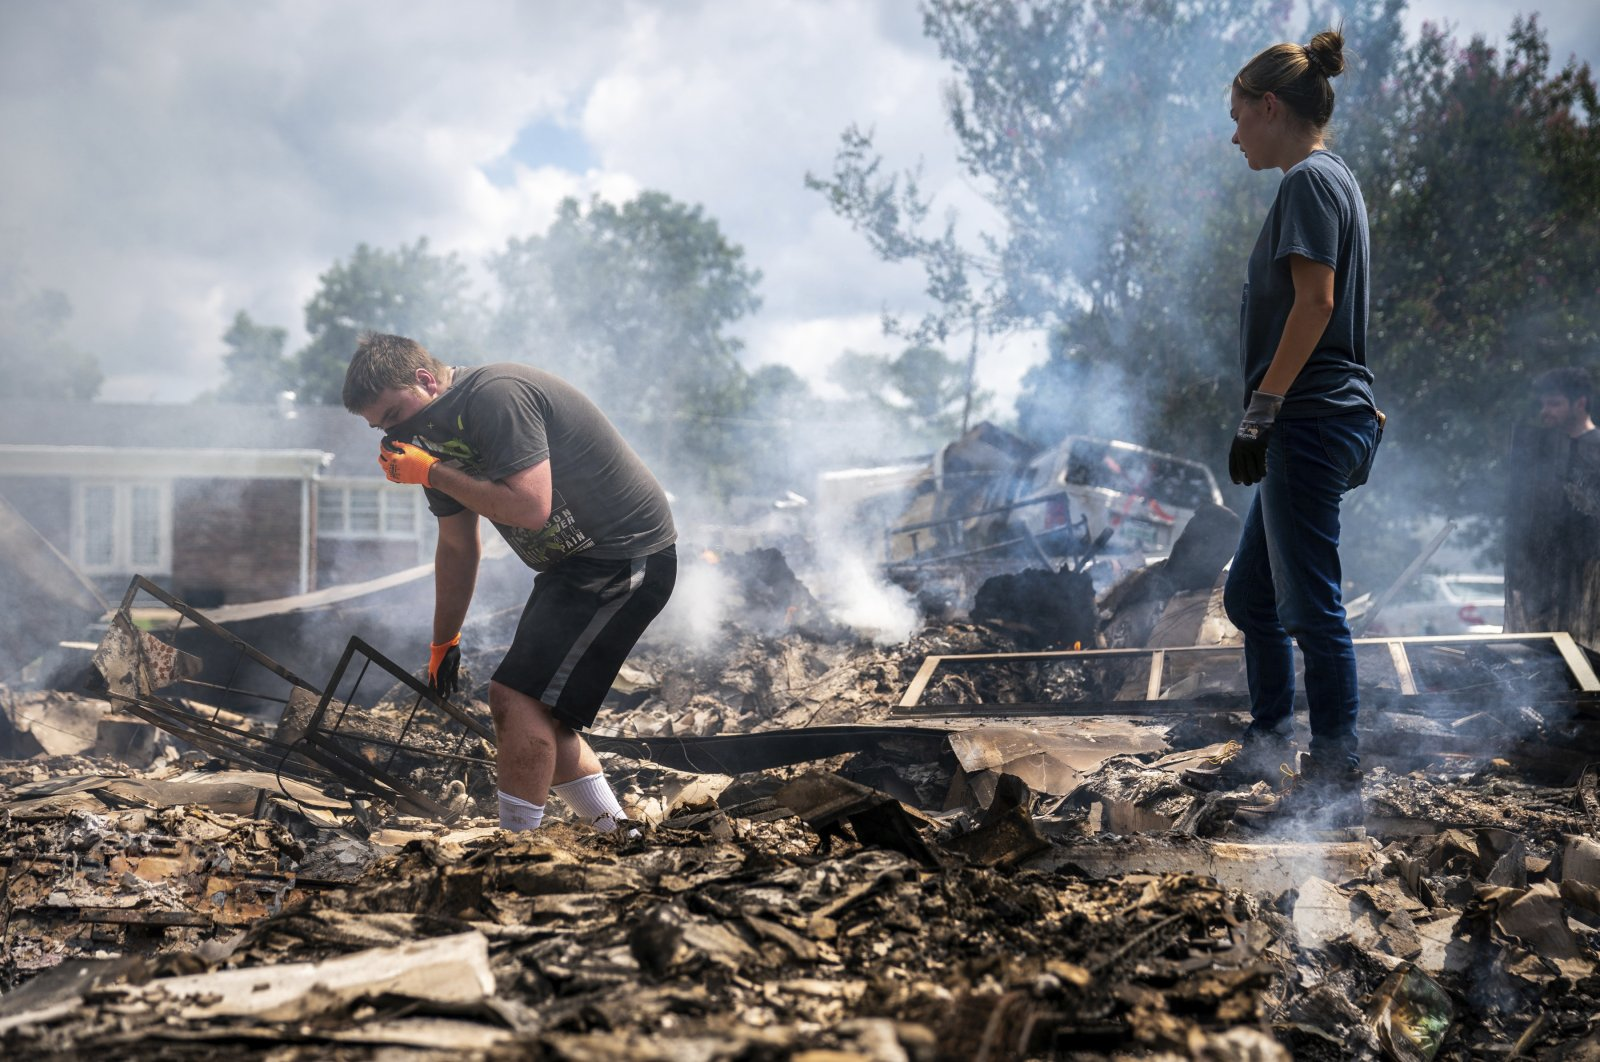 Josh Whitlock and Stacy Mathieson look through what is left of their home after it burned following flooding in Waverly, Tenn., Aug. 22, 2021. (AP Photo)